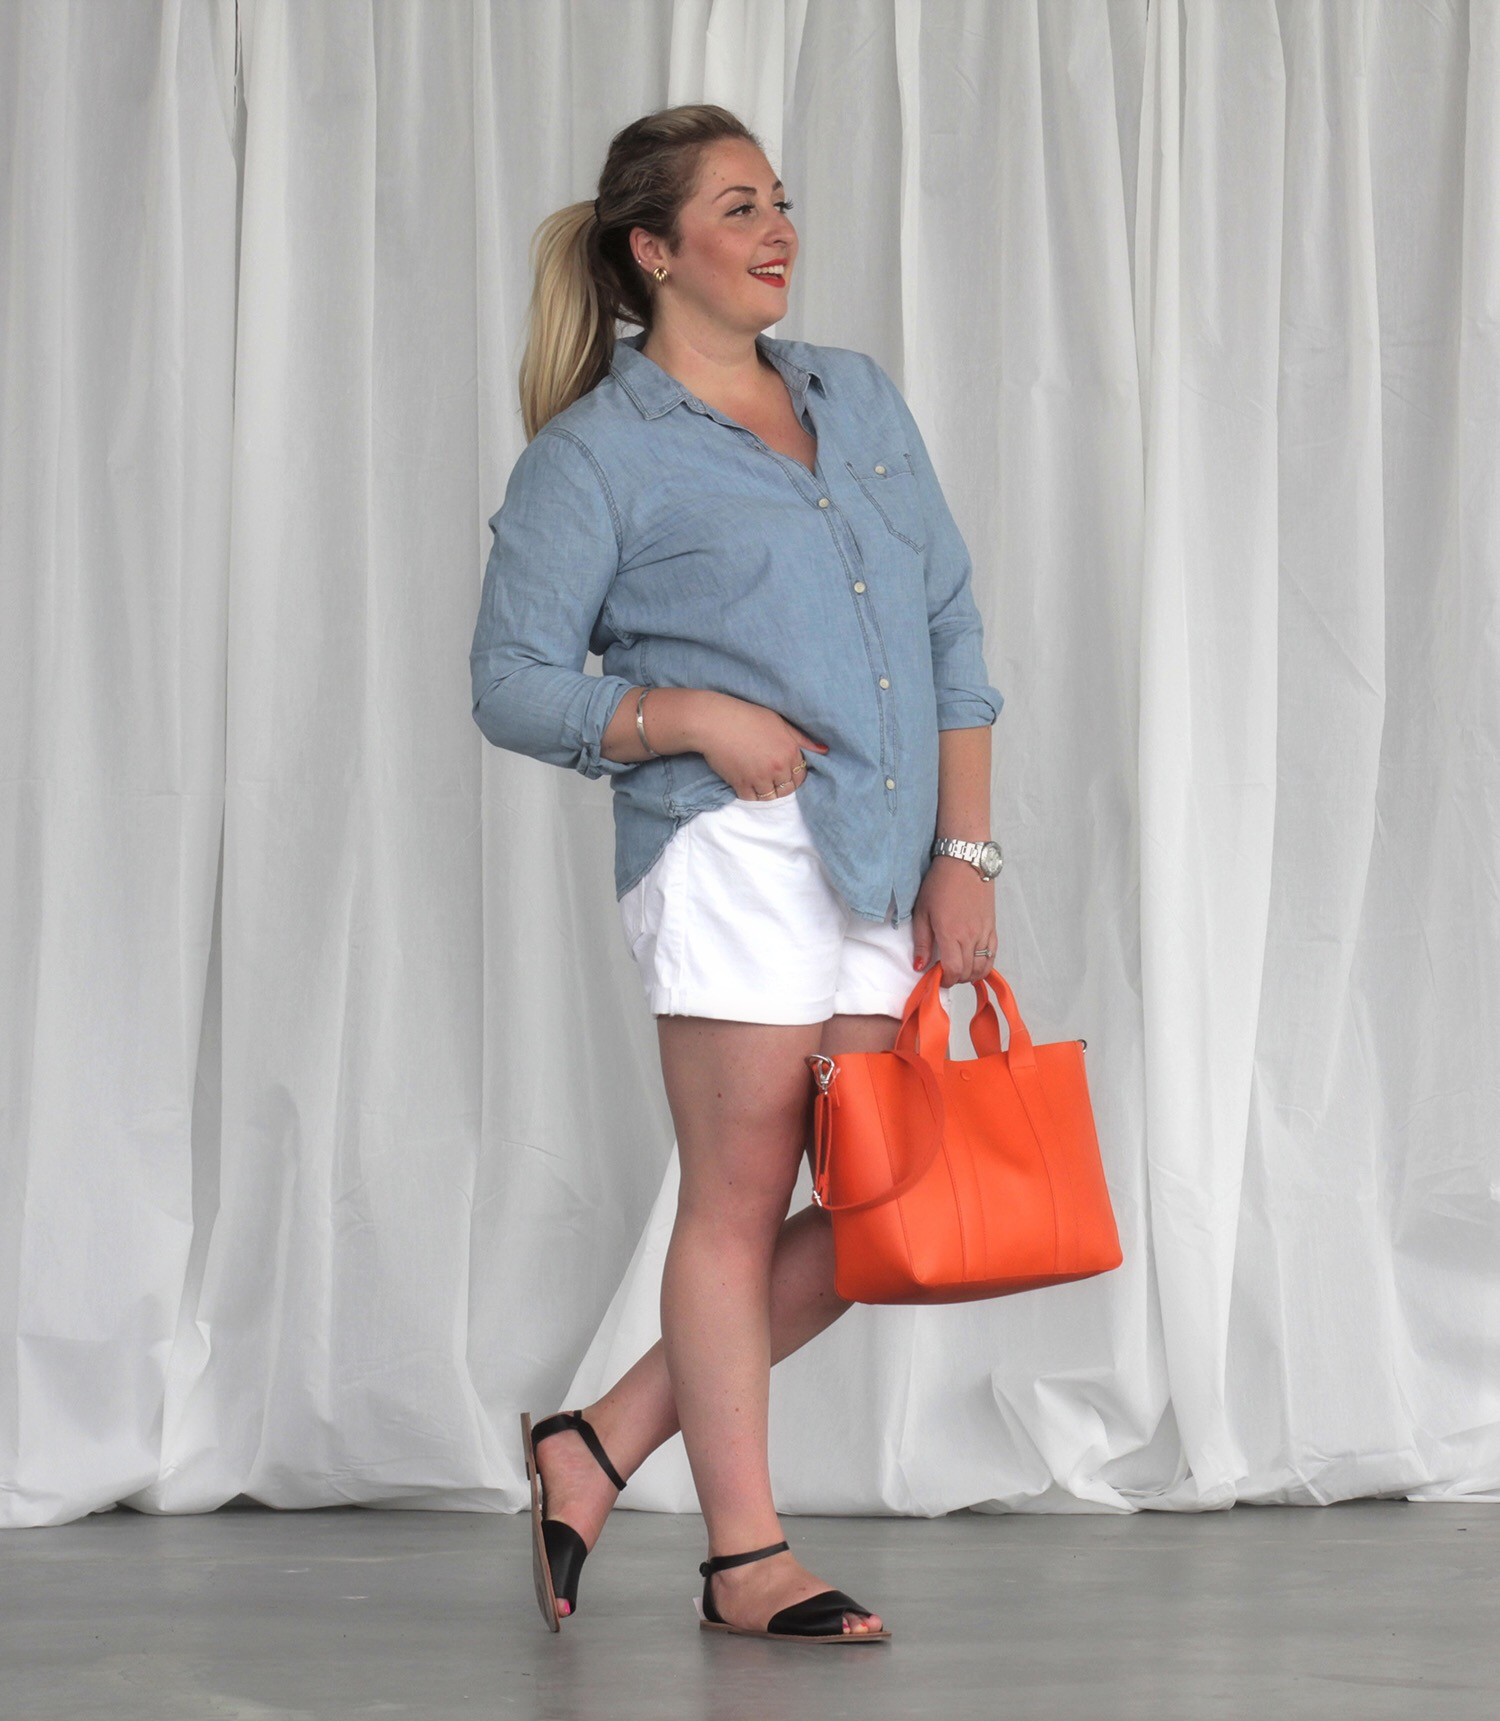 GAP Bayshore Plus Size Fashion Ottawa Fashion blog mode XLusive Chantsy Chantal Sarkisian